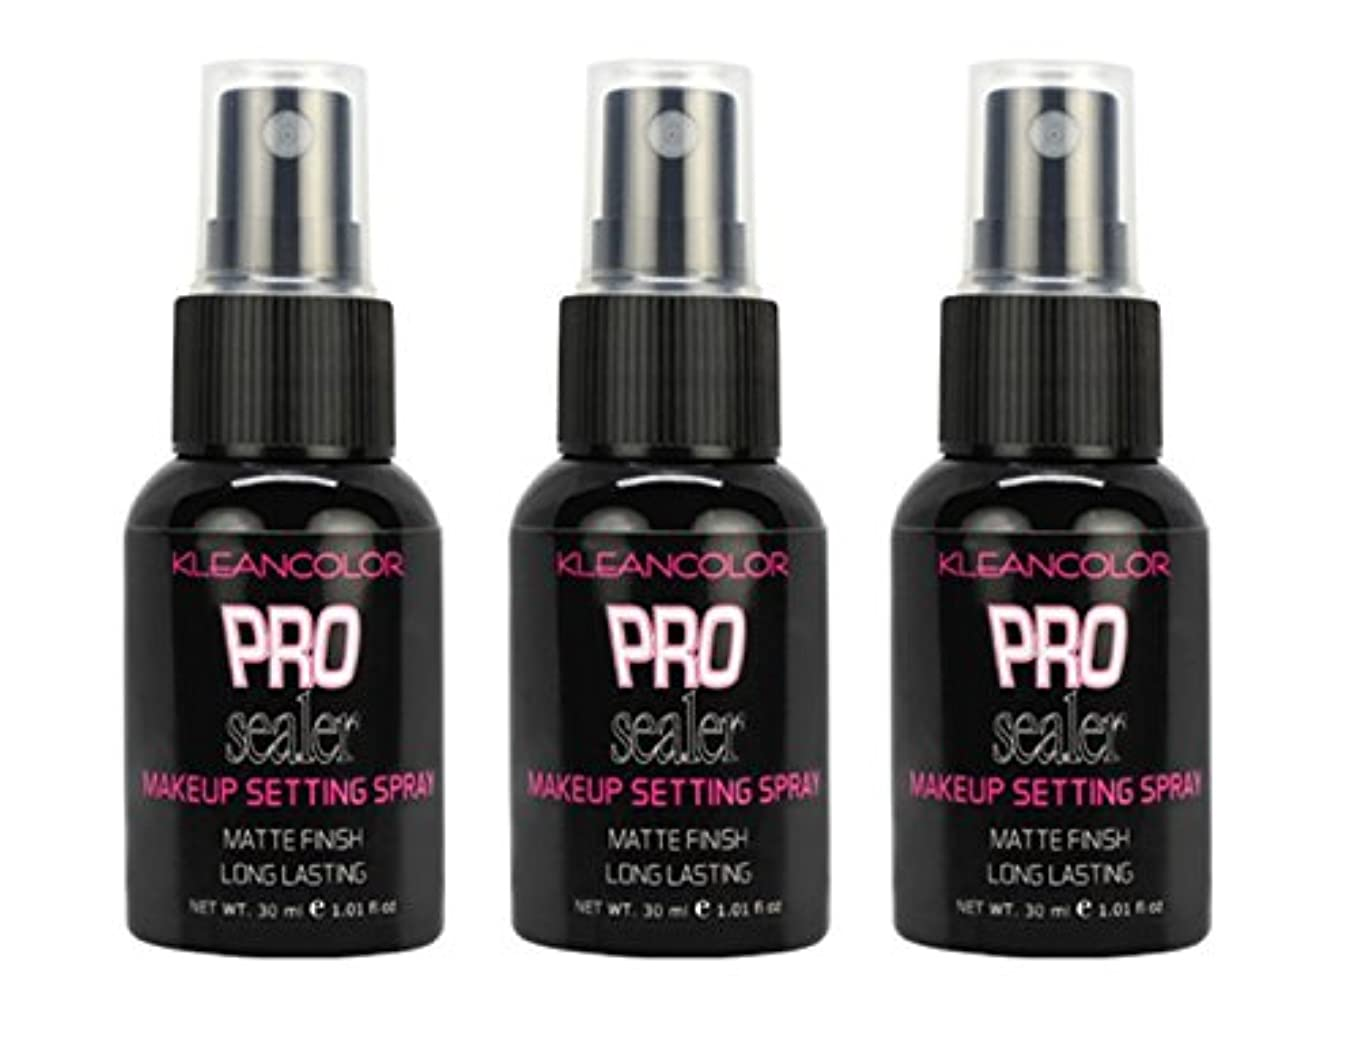 脆いクローゼットしかし(3 Pack) KLEANCOLOR Pro Sealer Makeup Setting Spray - Matte Finish (並行輸入品)